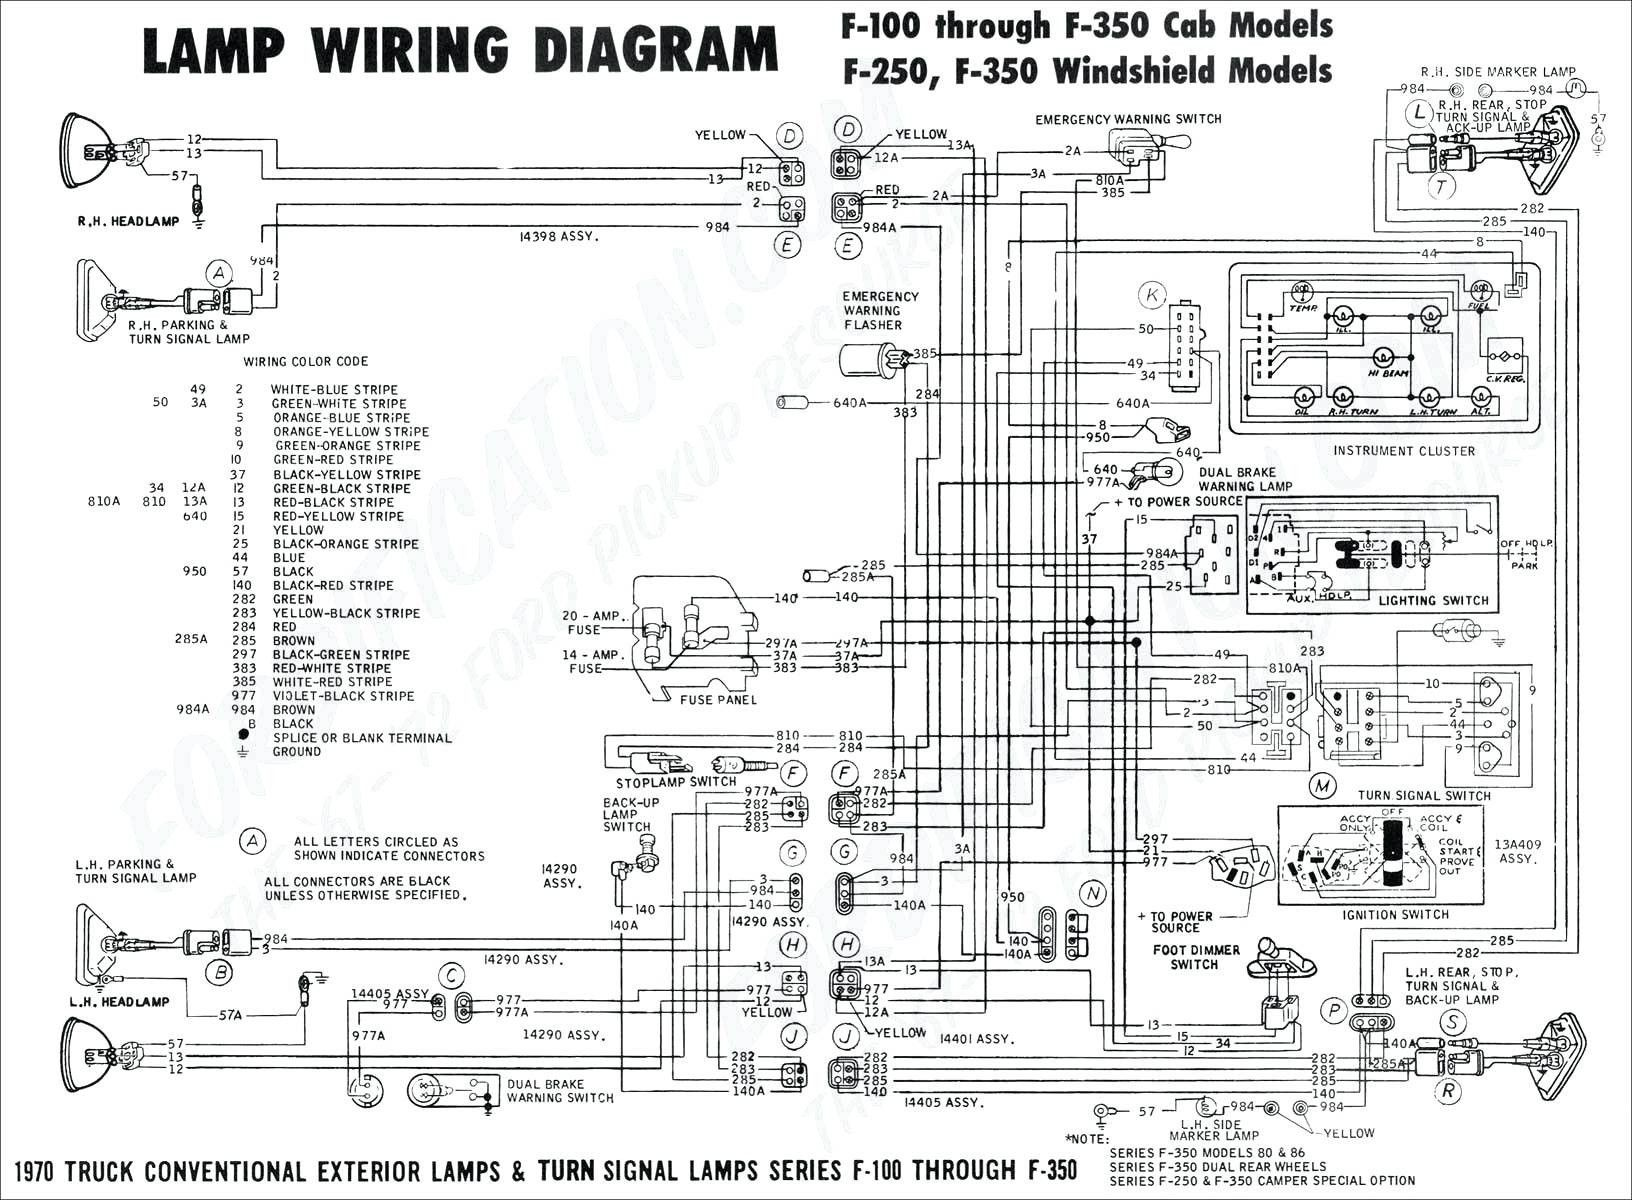 2000 Mustang Gt Fuse Box Diagram Ford Explorer Ford Ranger Ford Focus